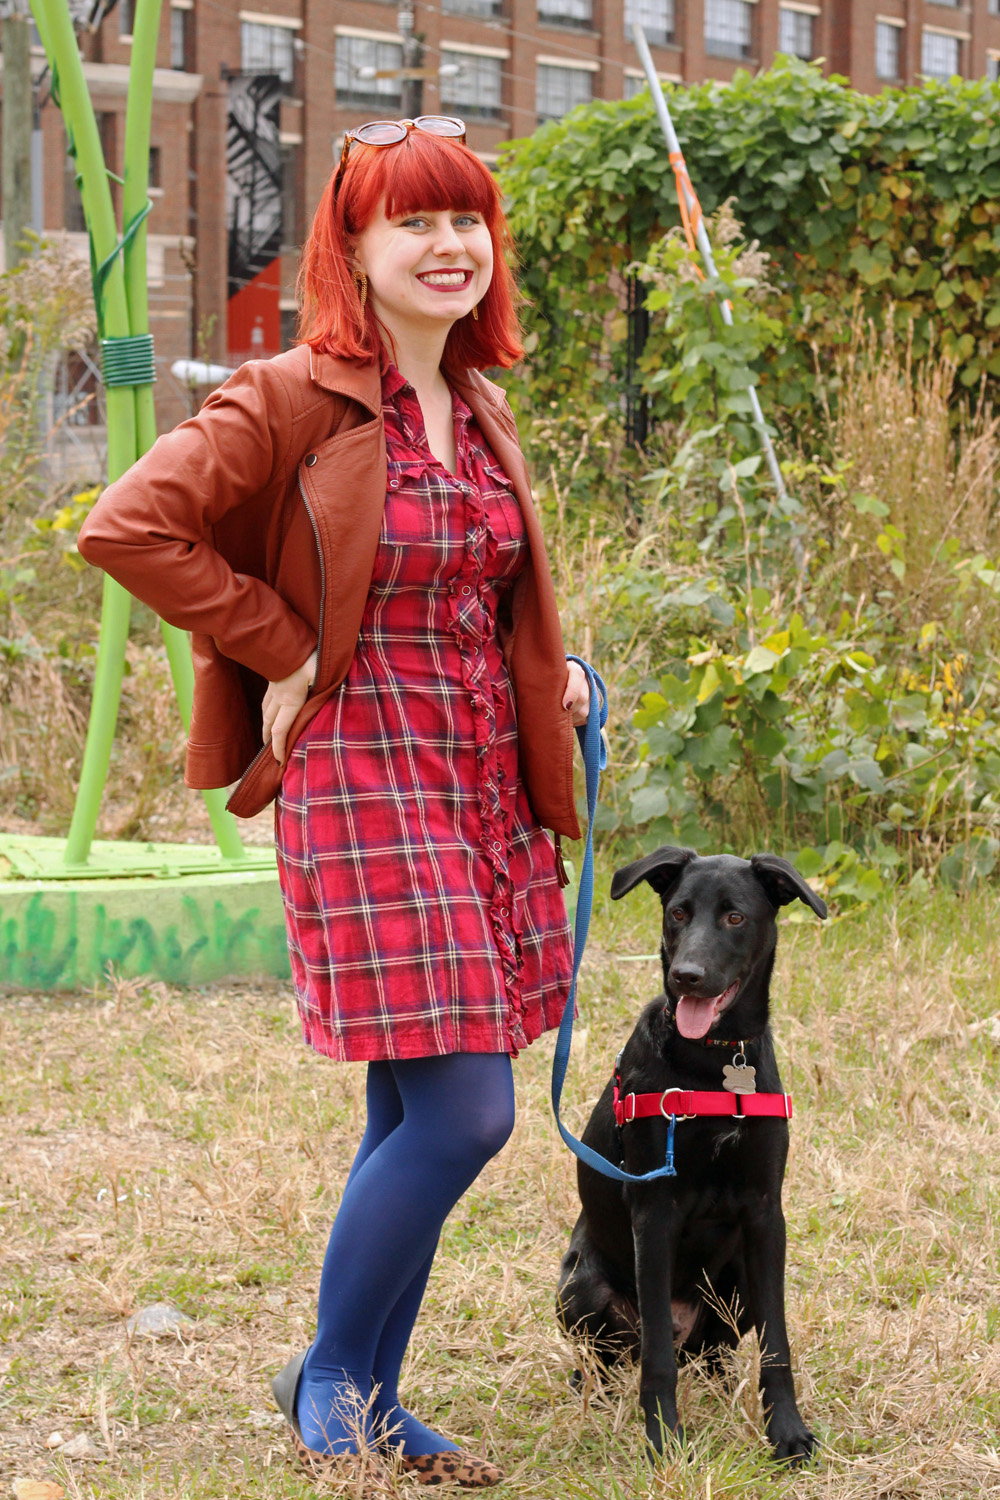 Wearing a Red Plaid Dress with Leopard Print Flats, a Faux leather Jacket, and Blue Tights